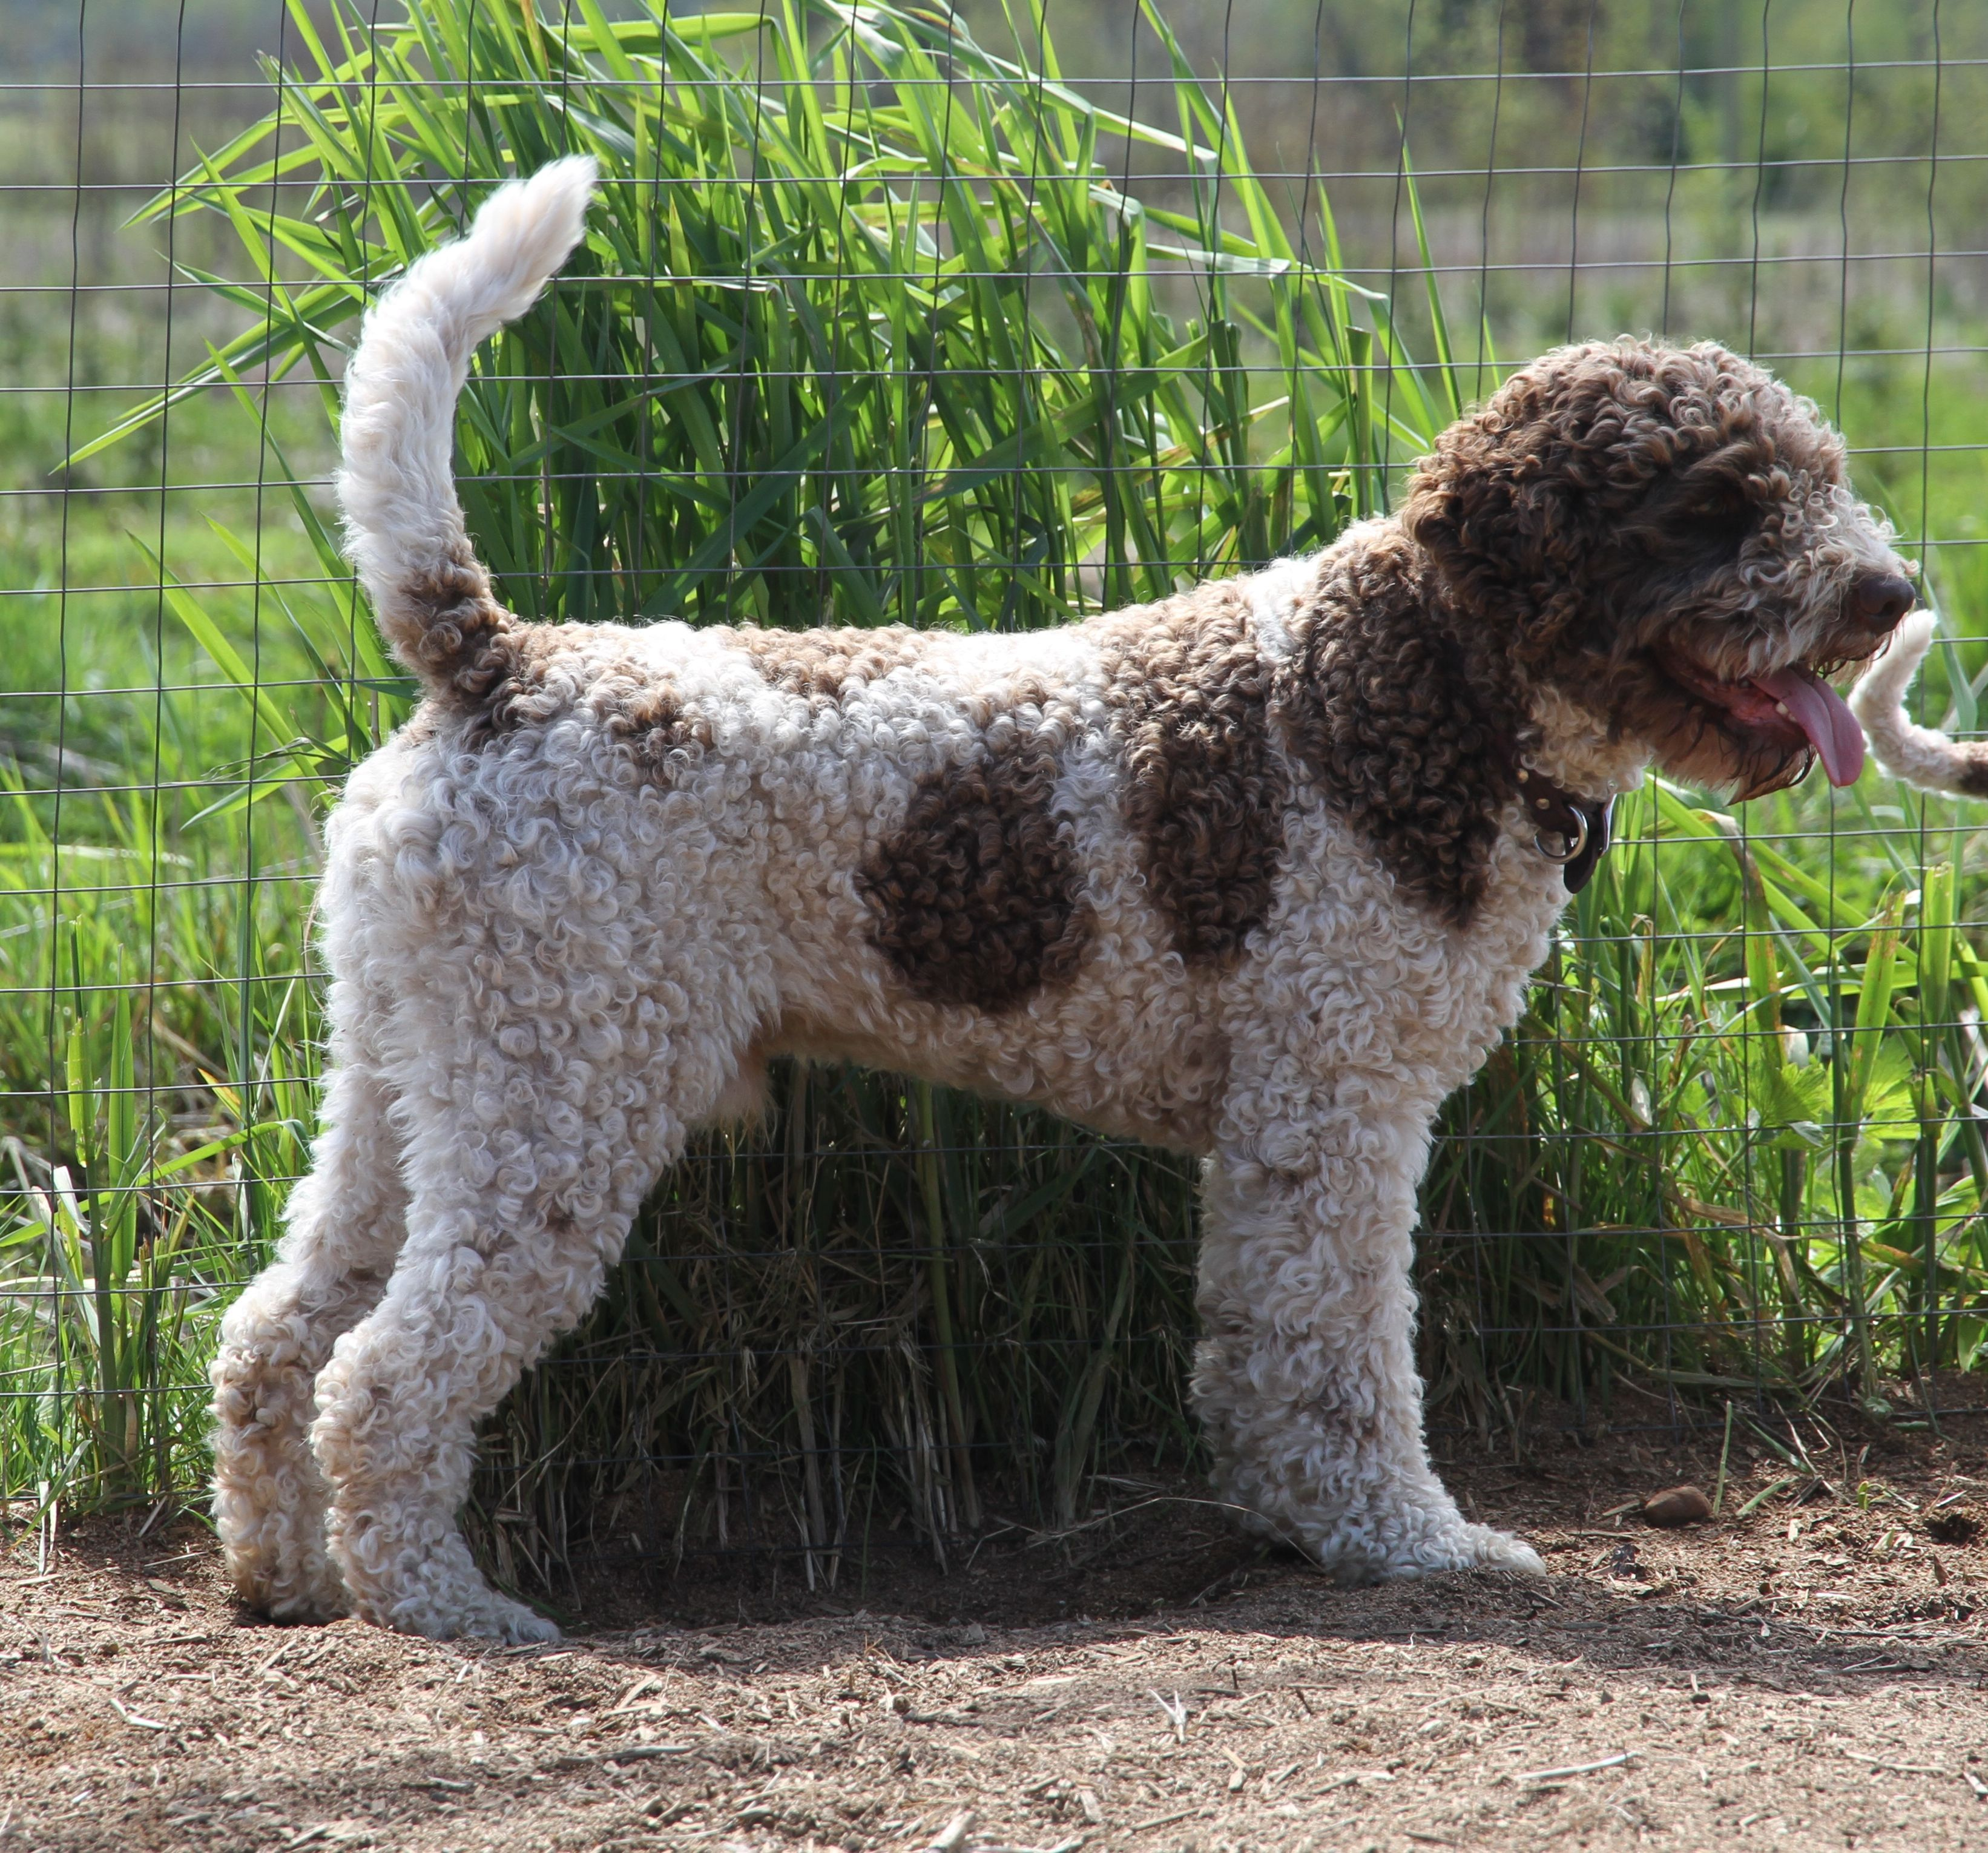 Ducketts At Their Home Lagotto Romagnolo Of Canada Lrc Dogcratecanada Lagotto Romagnolo Cheap Dog Toys Best Dog Toys